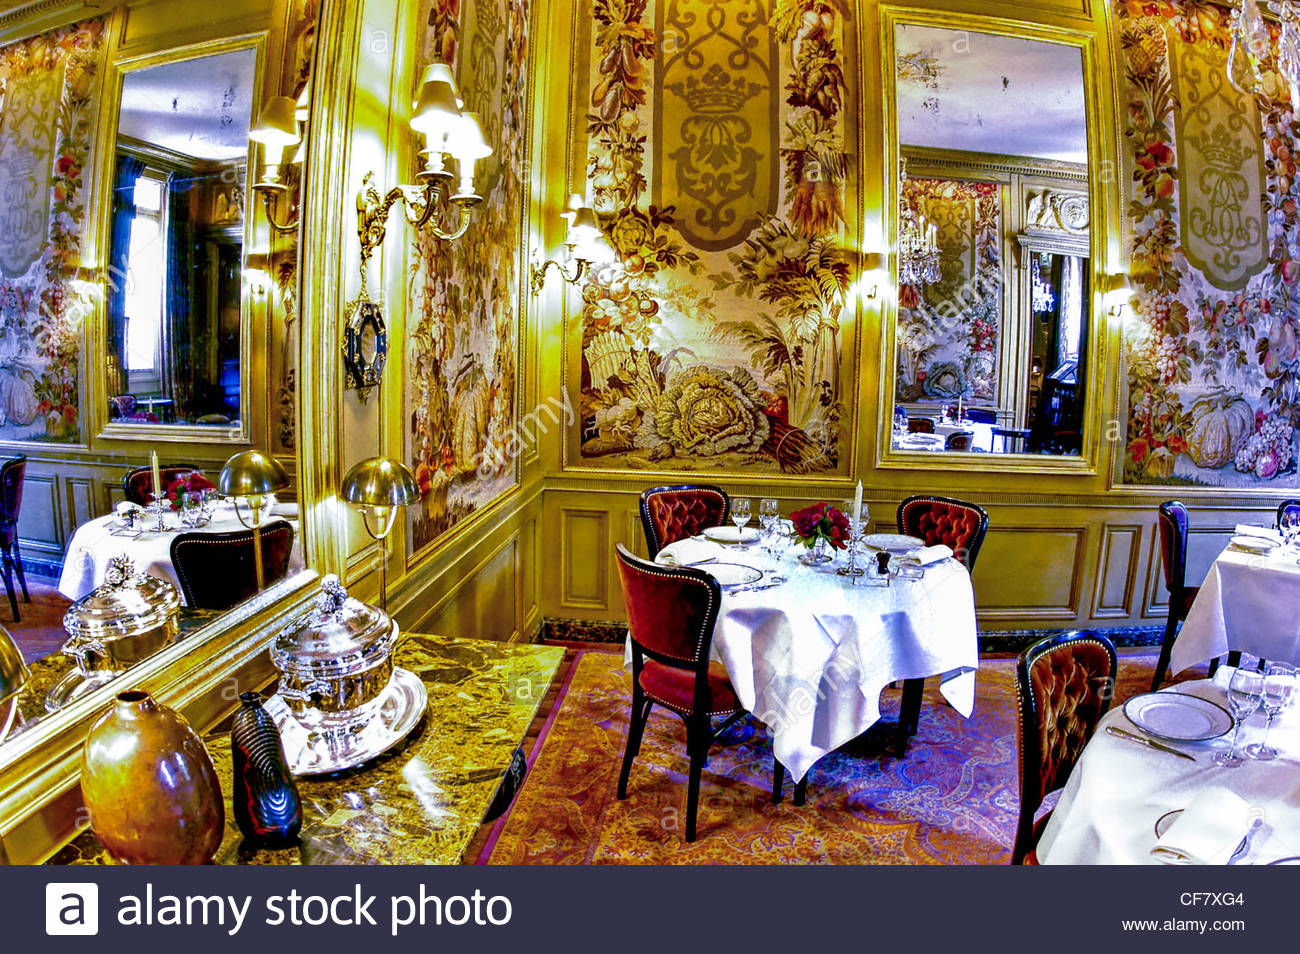 Fancy restaurant table setting - Paris France Haute Cuisine Fancy French Restaurant L Ambroisie 19th C Interior Salon Dining Room Table Setting